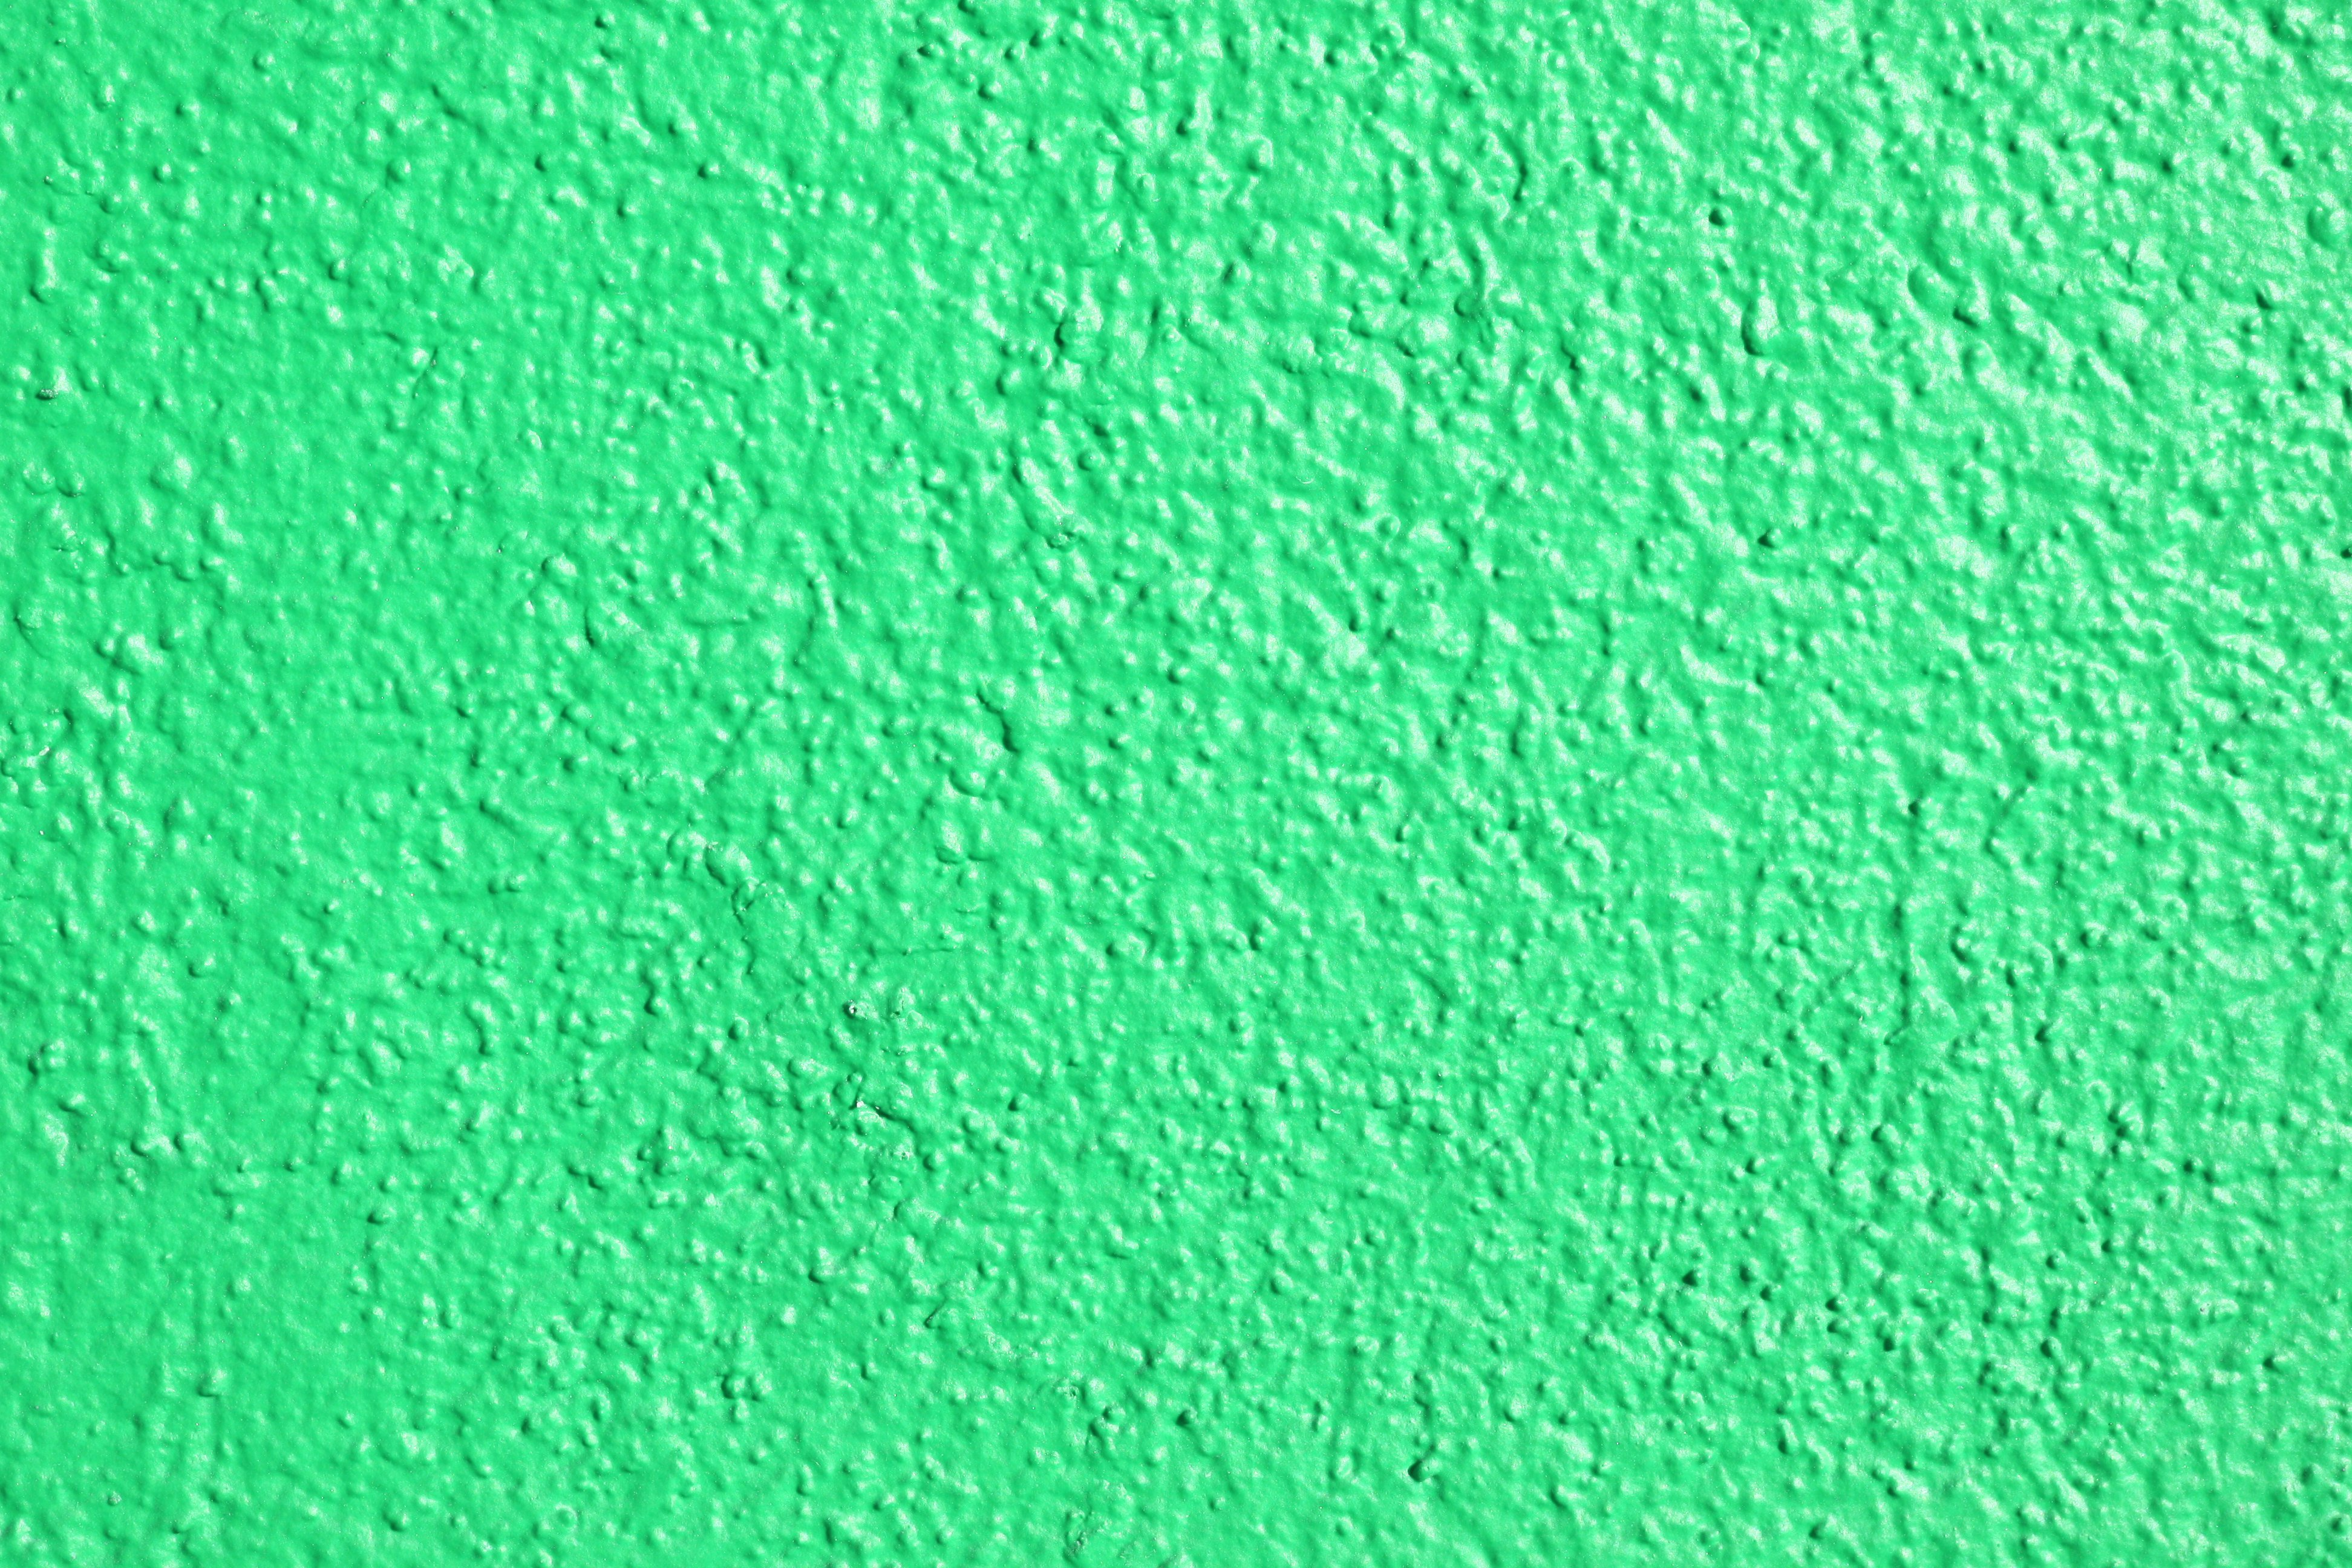 Green Painted Wall Texture